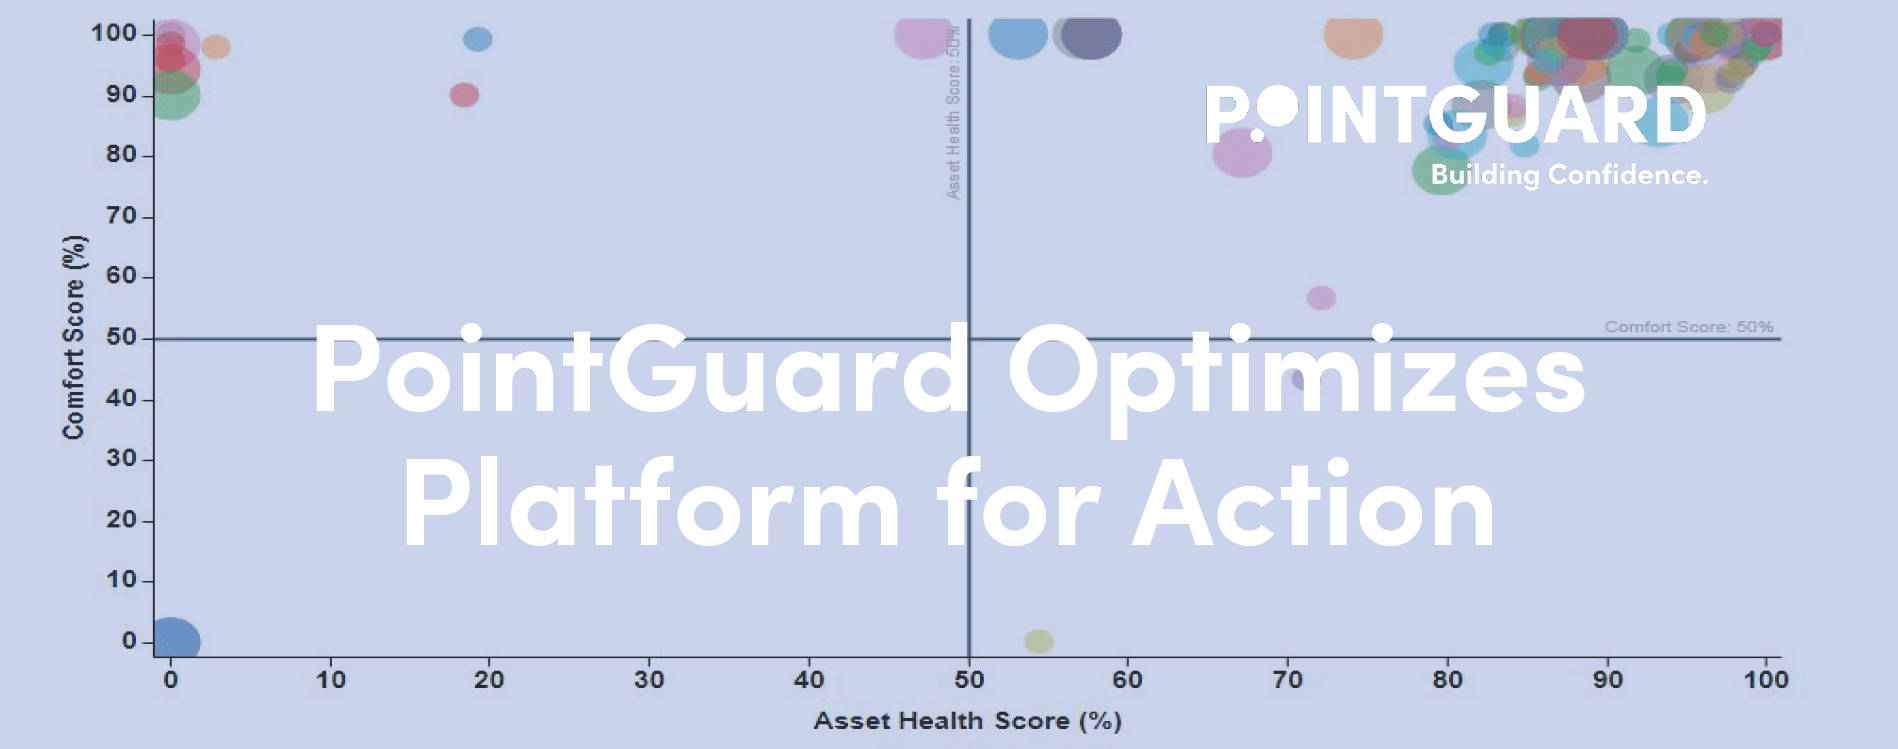 PointGuard Optimizes Platform for Action with Scatter Plot